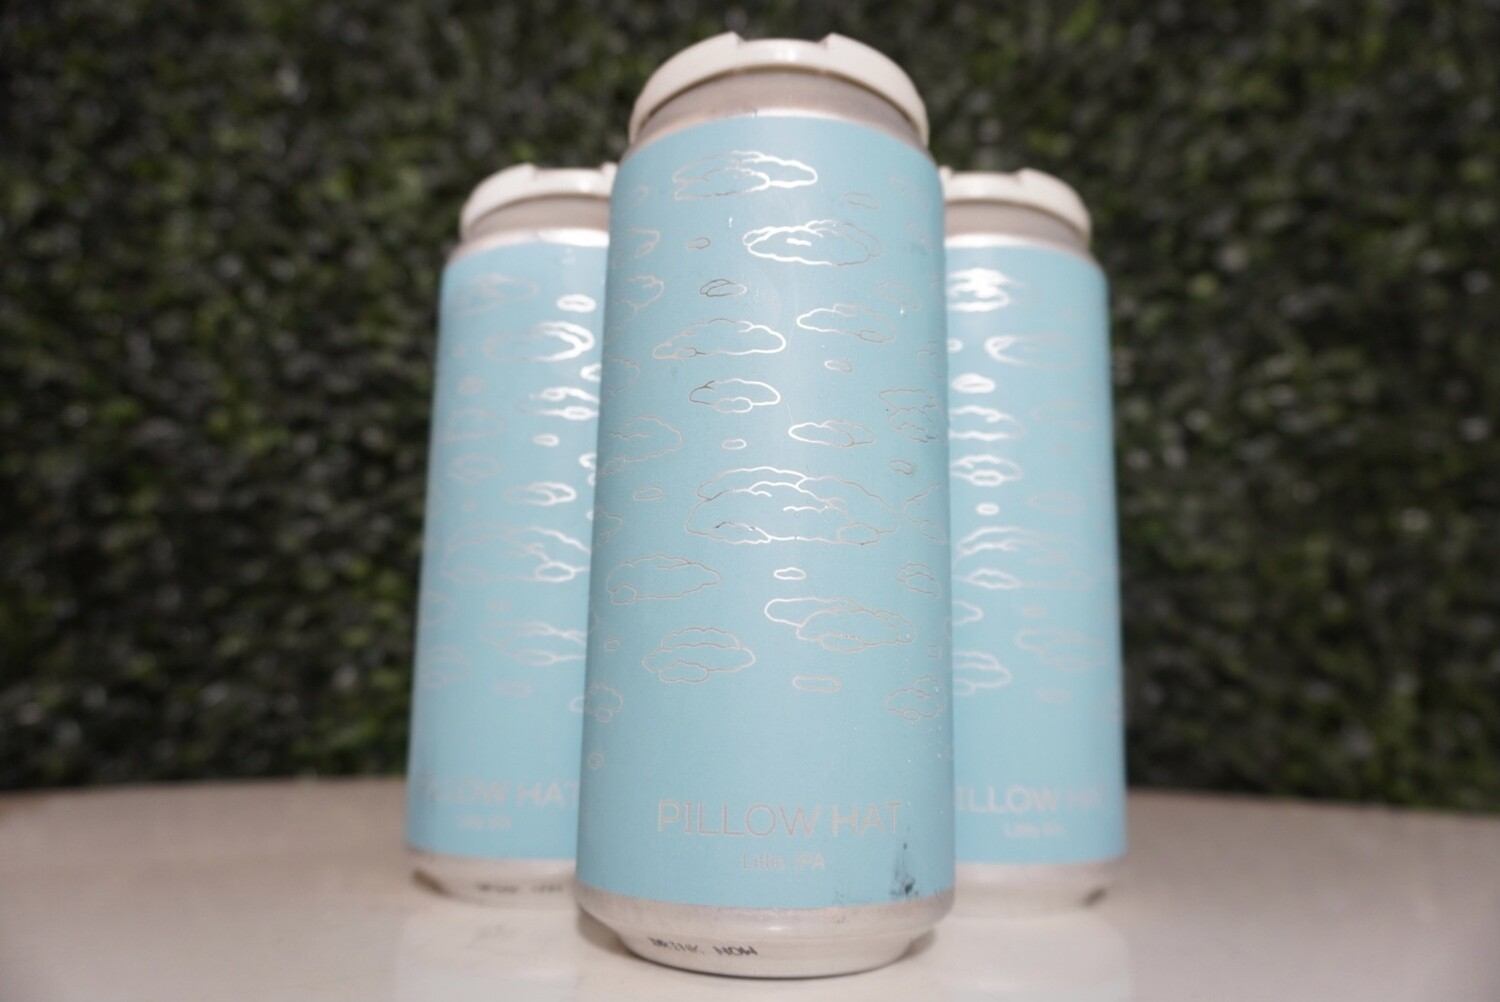 Hudson Valley - Pillow Hat - Session IPA - 4% ABV - 16oz Can